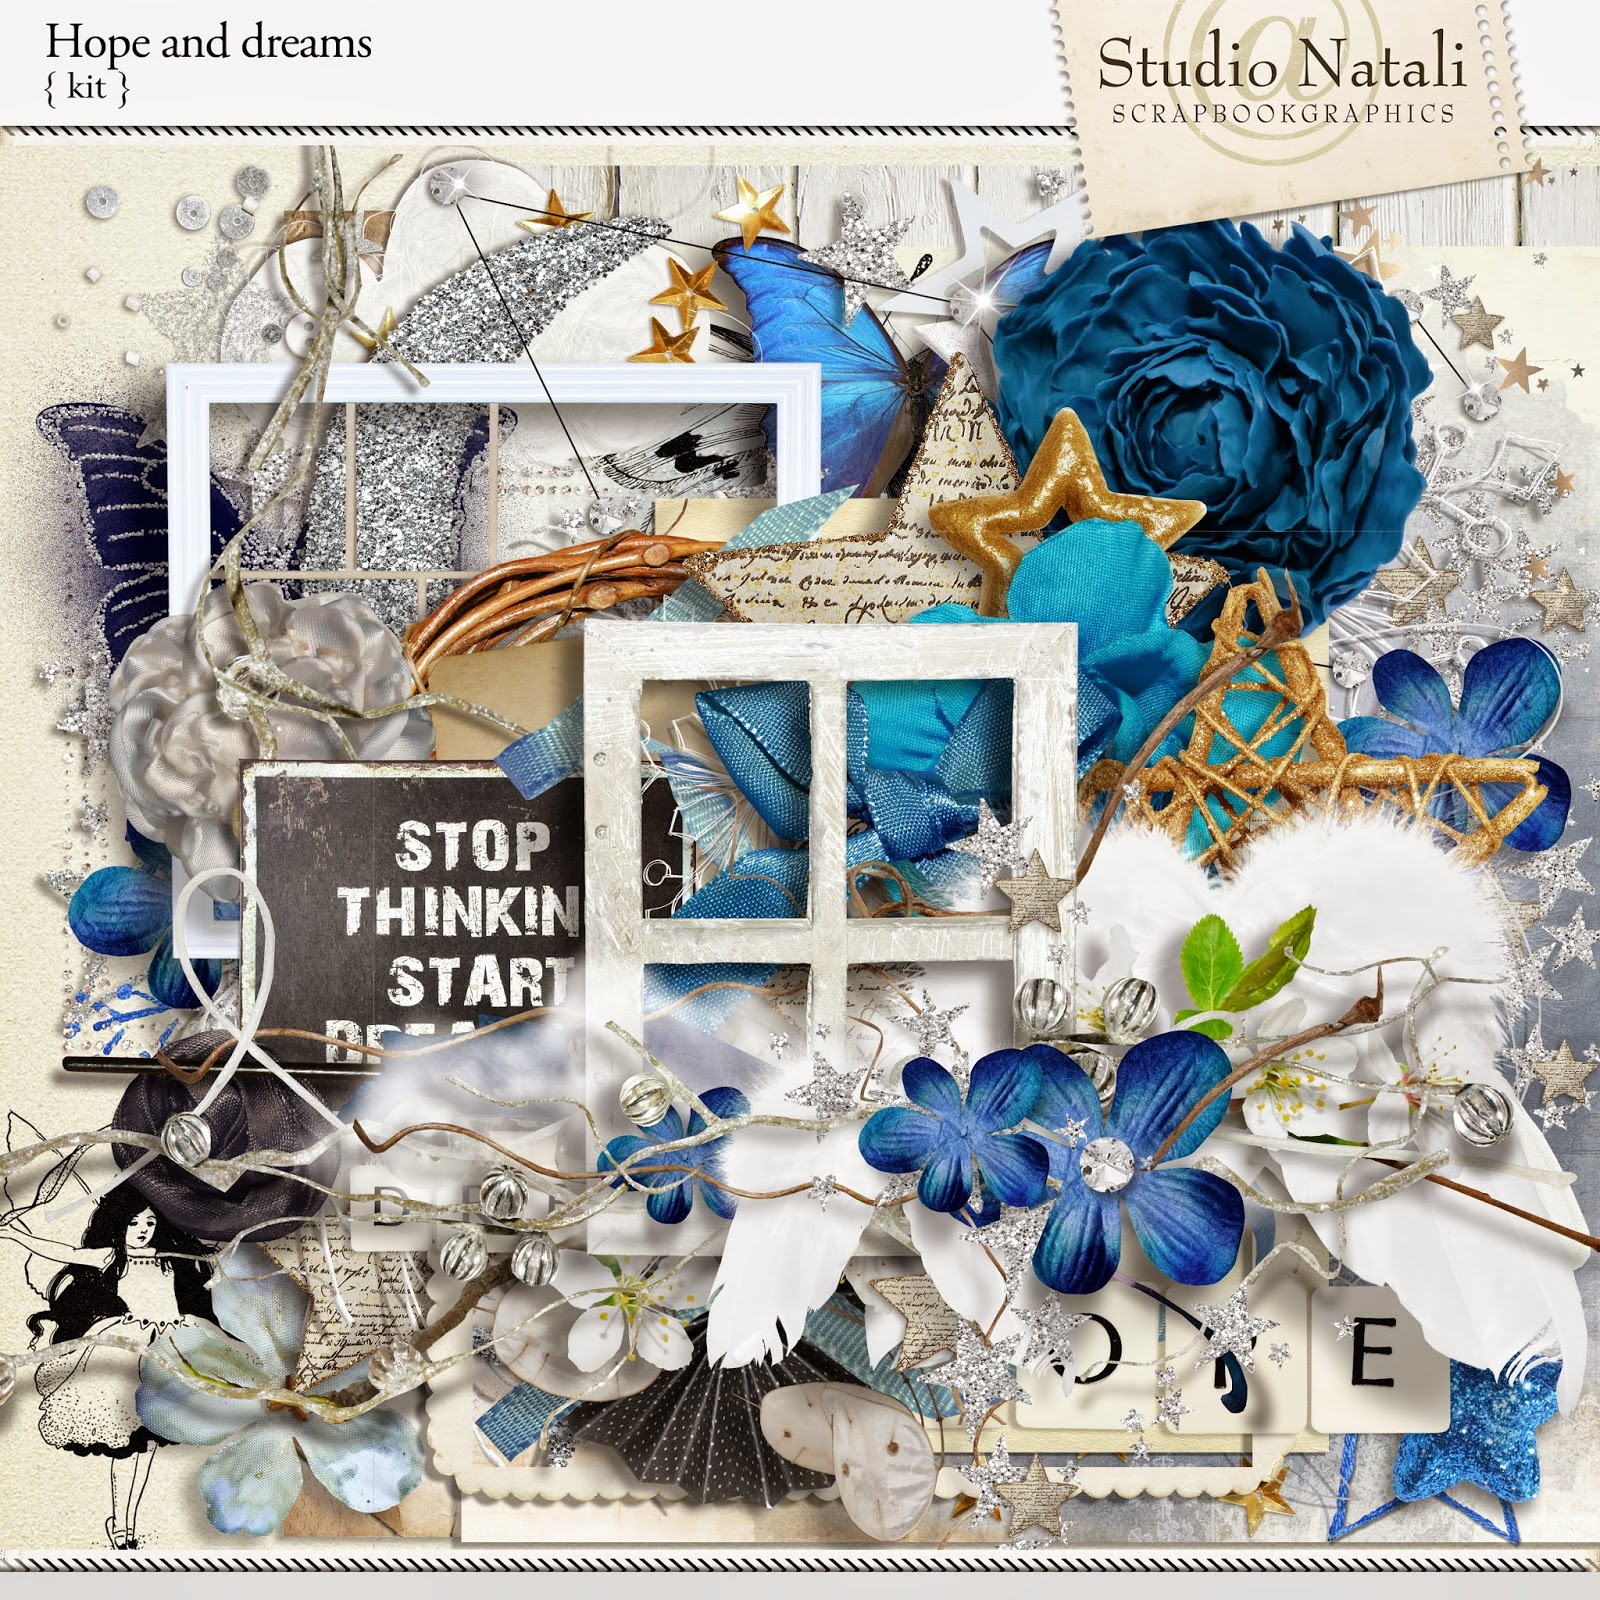 http://shop.scrapbookgraphics.com/Hope-and-Dream.html